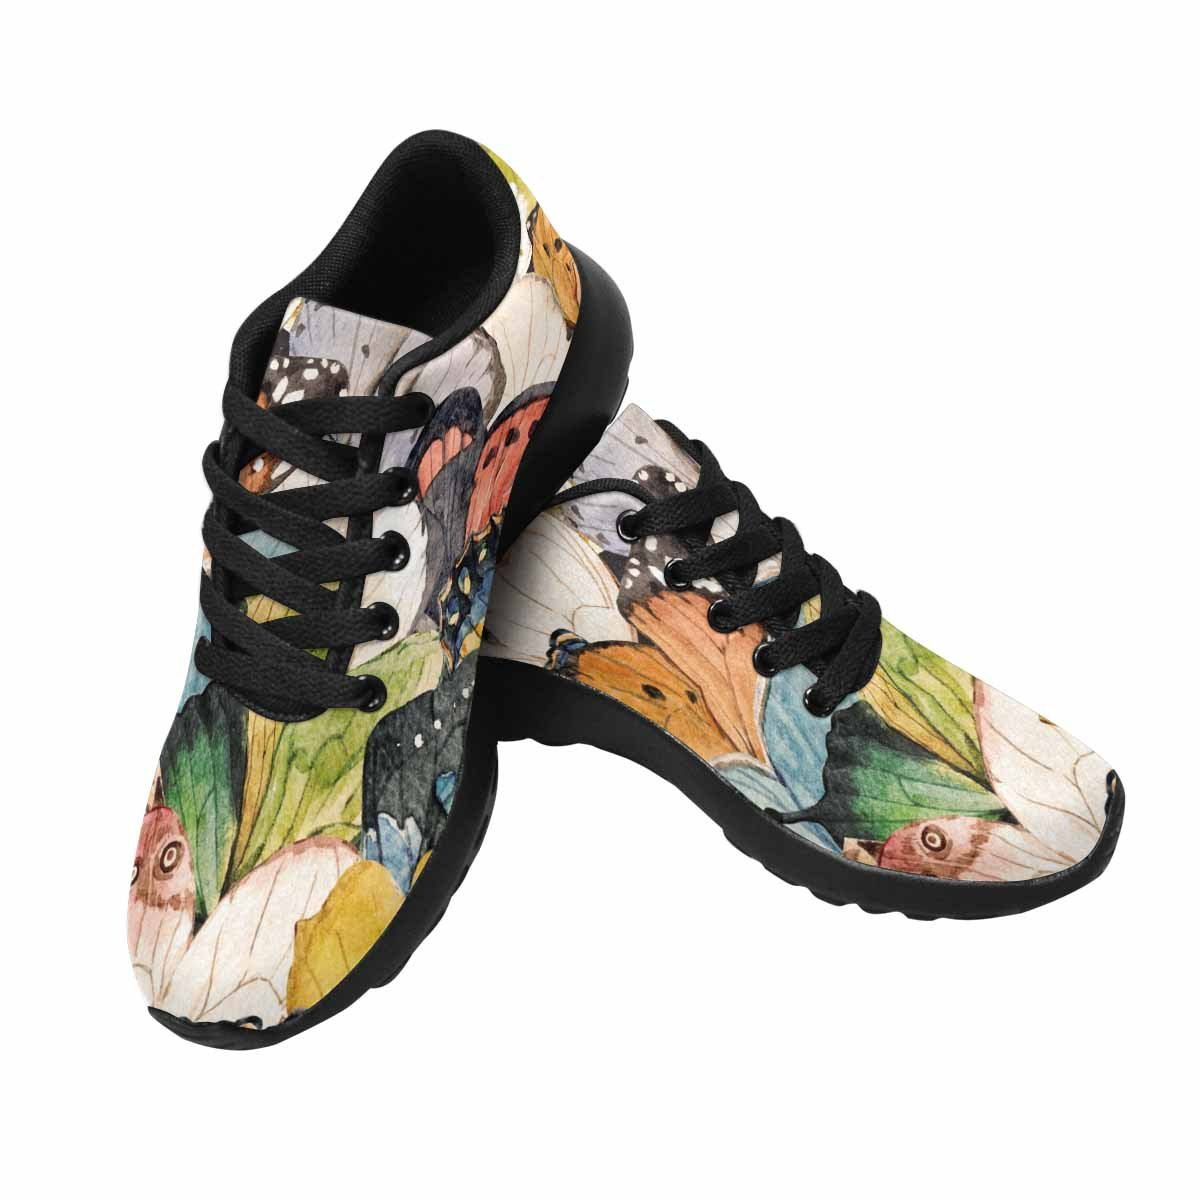 InterestPrint Women's Go Easy Walking Comfort Sports Athletic Shoes Bright Pattern Butterfly Wings US 7